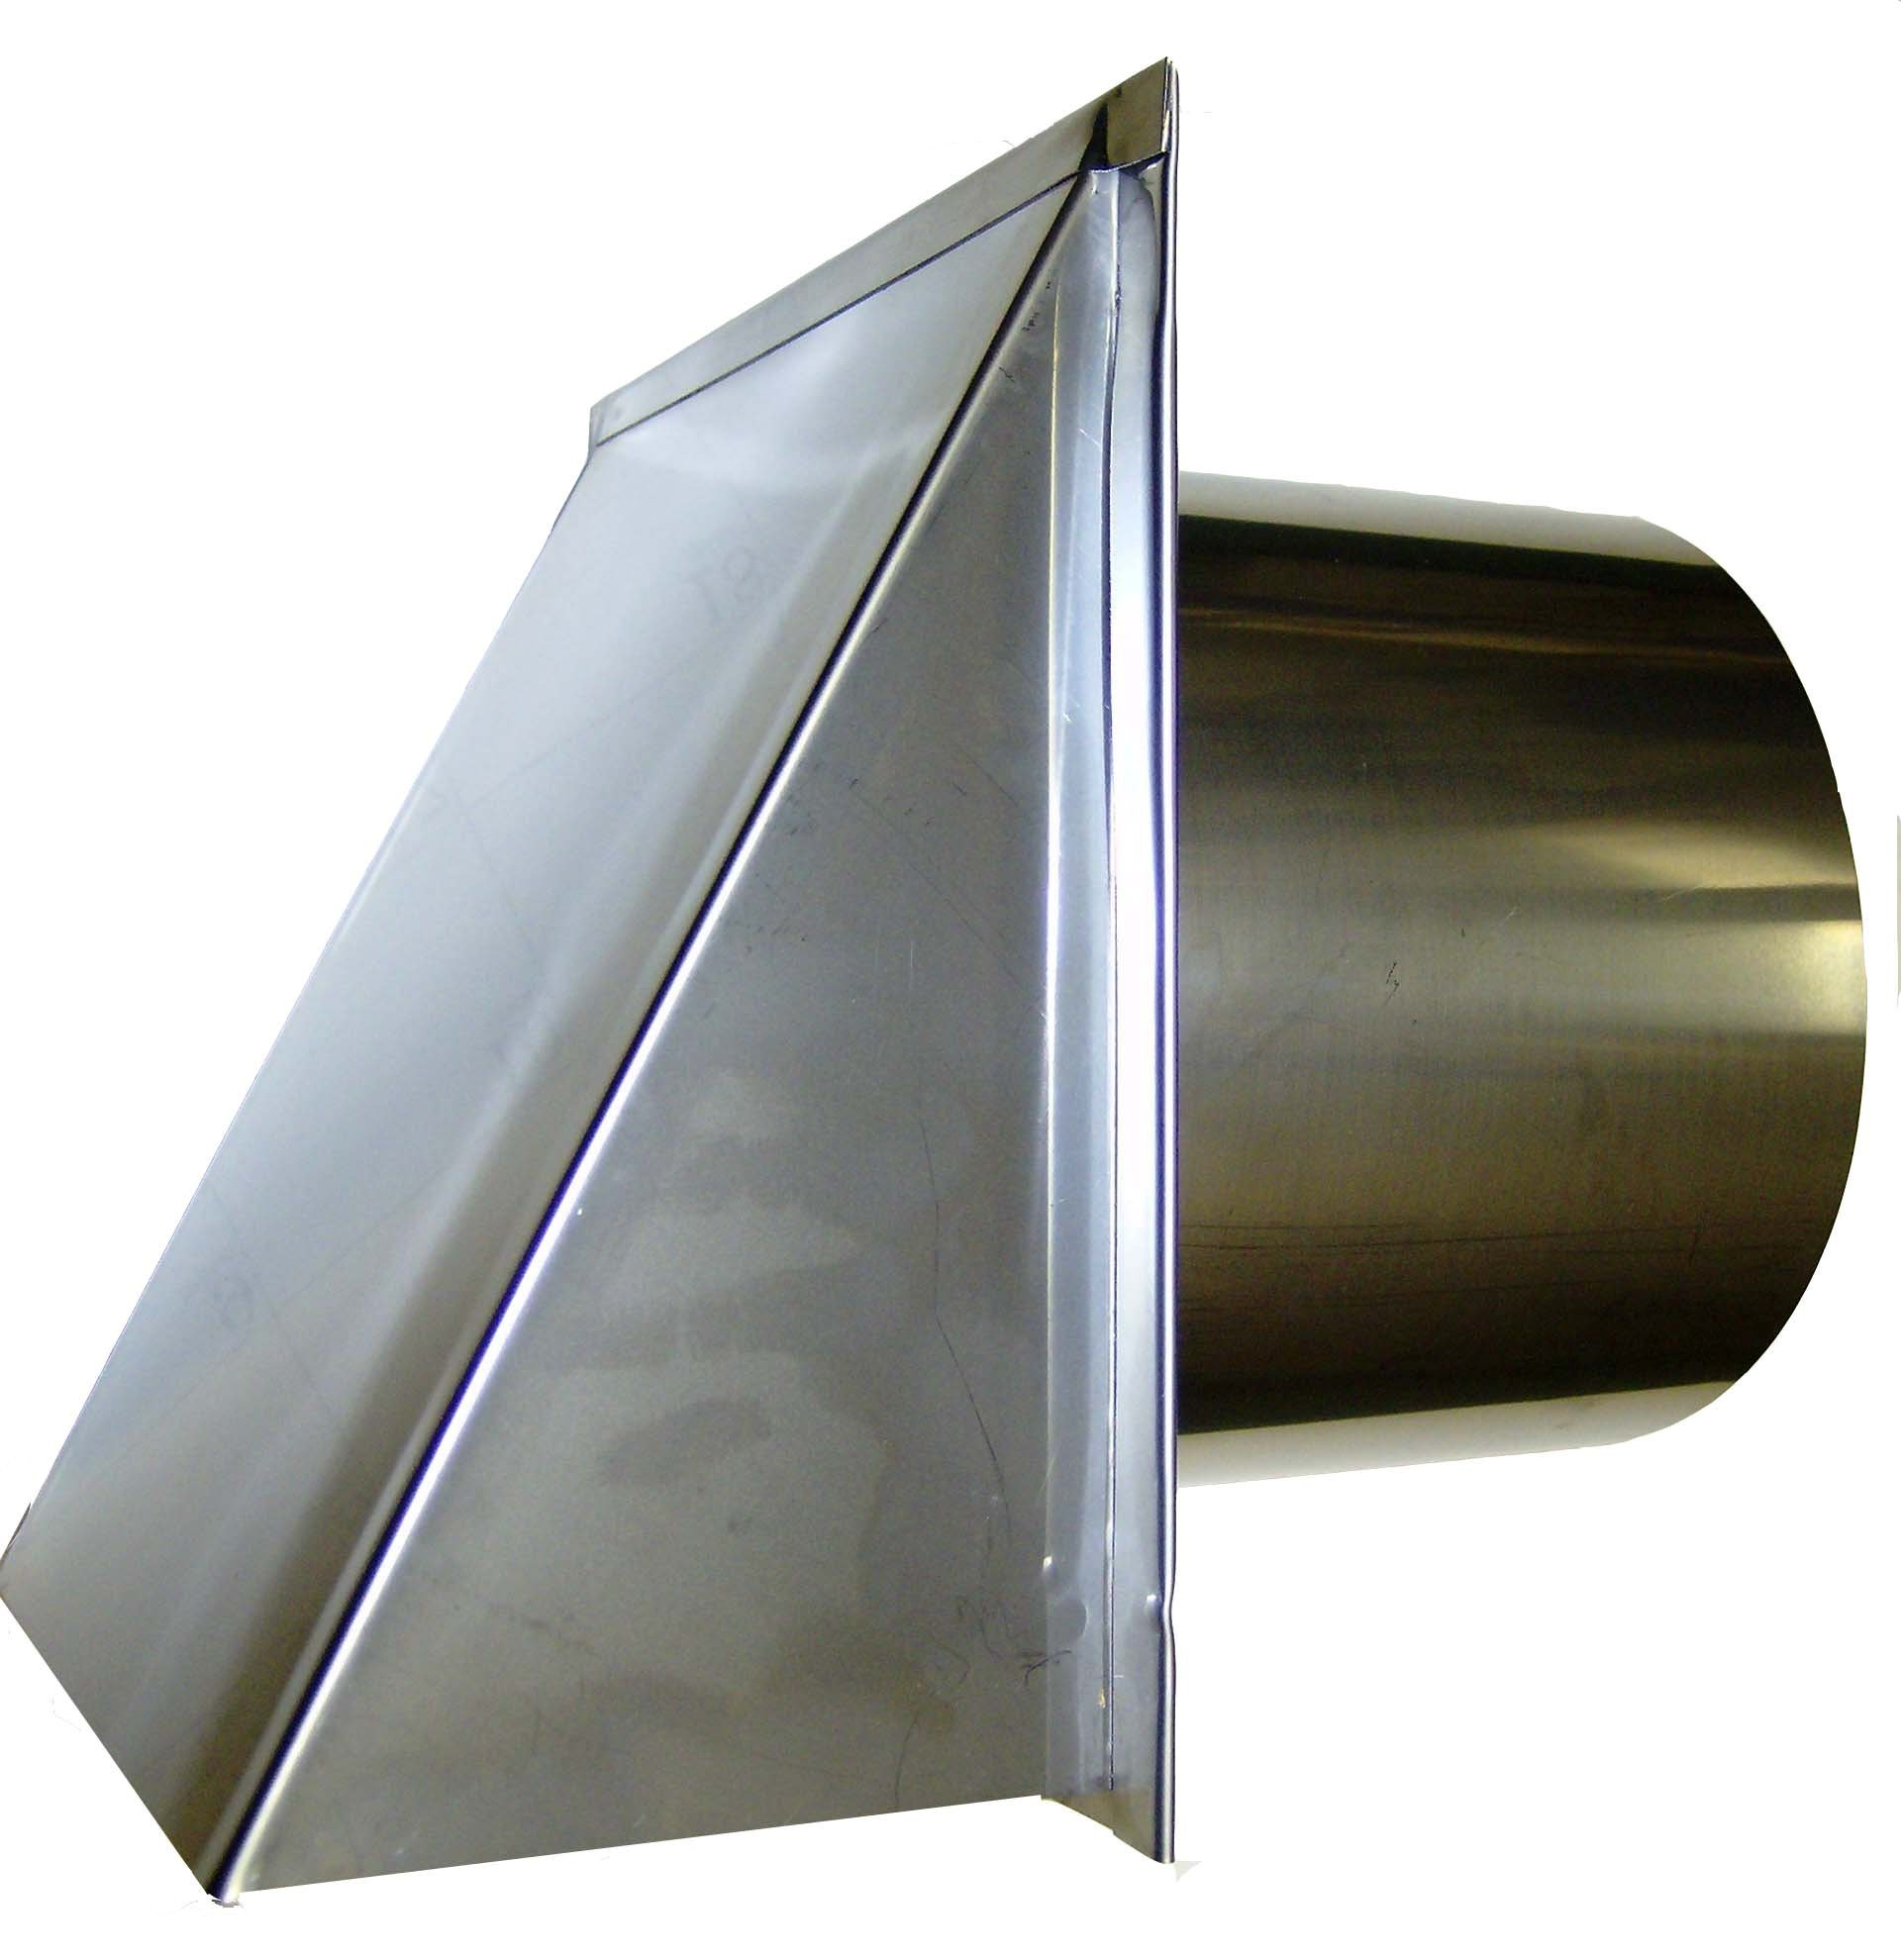 7 Inch Stainless Steel Exterior Side Wall Cap with Damper and Screen